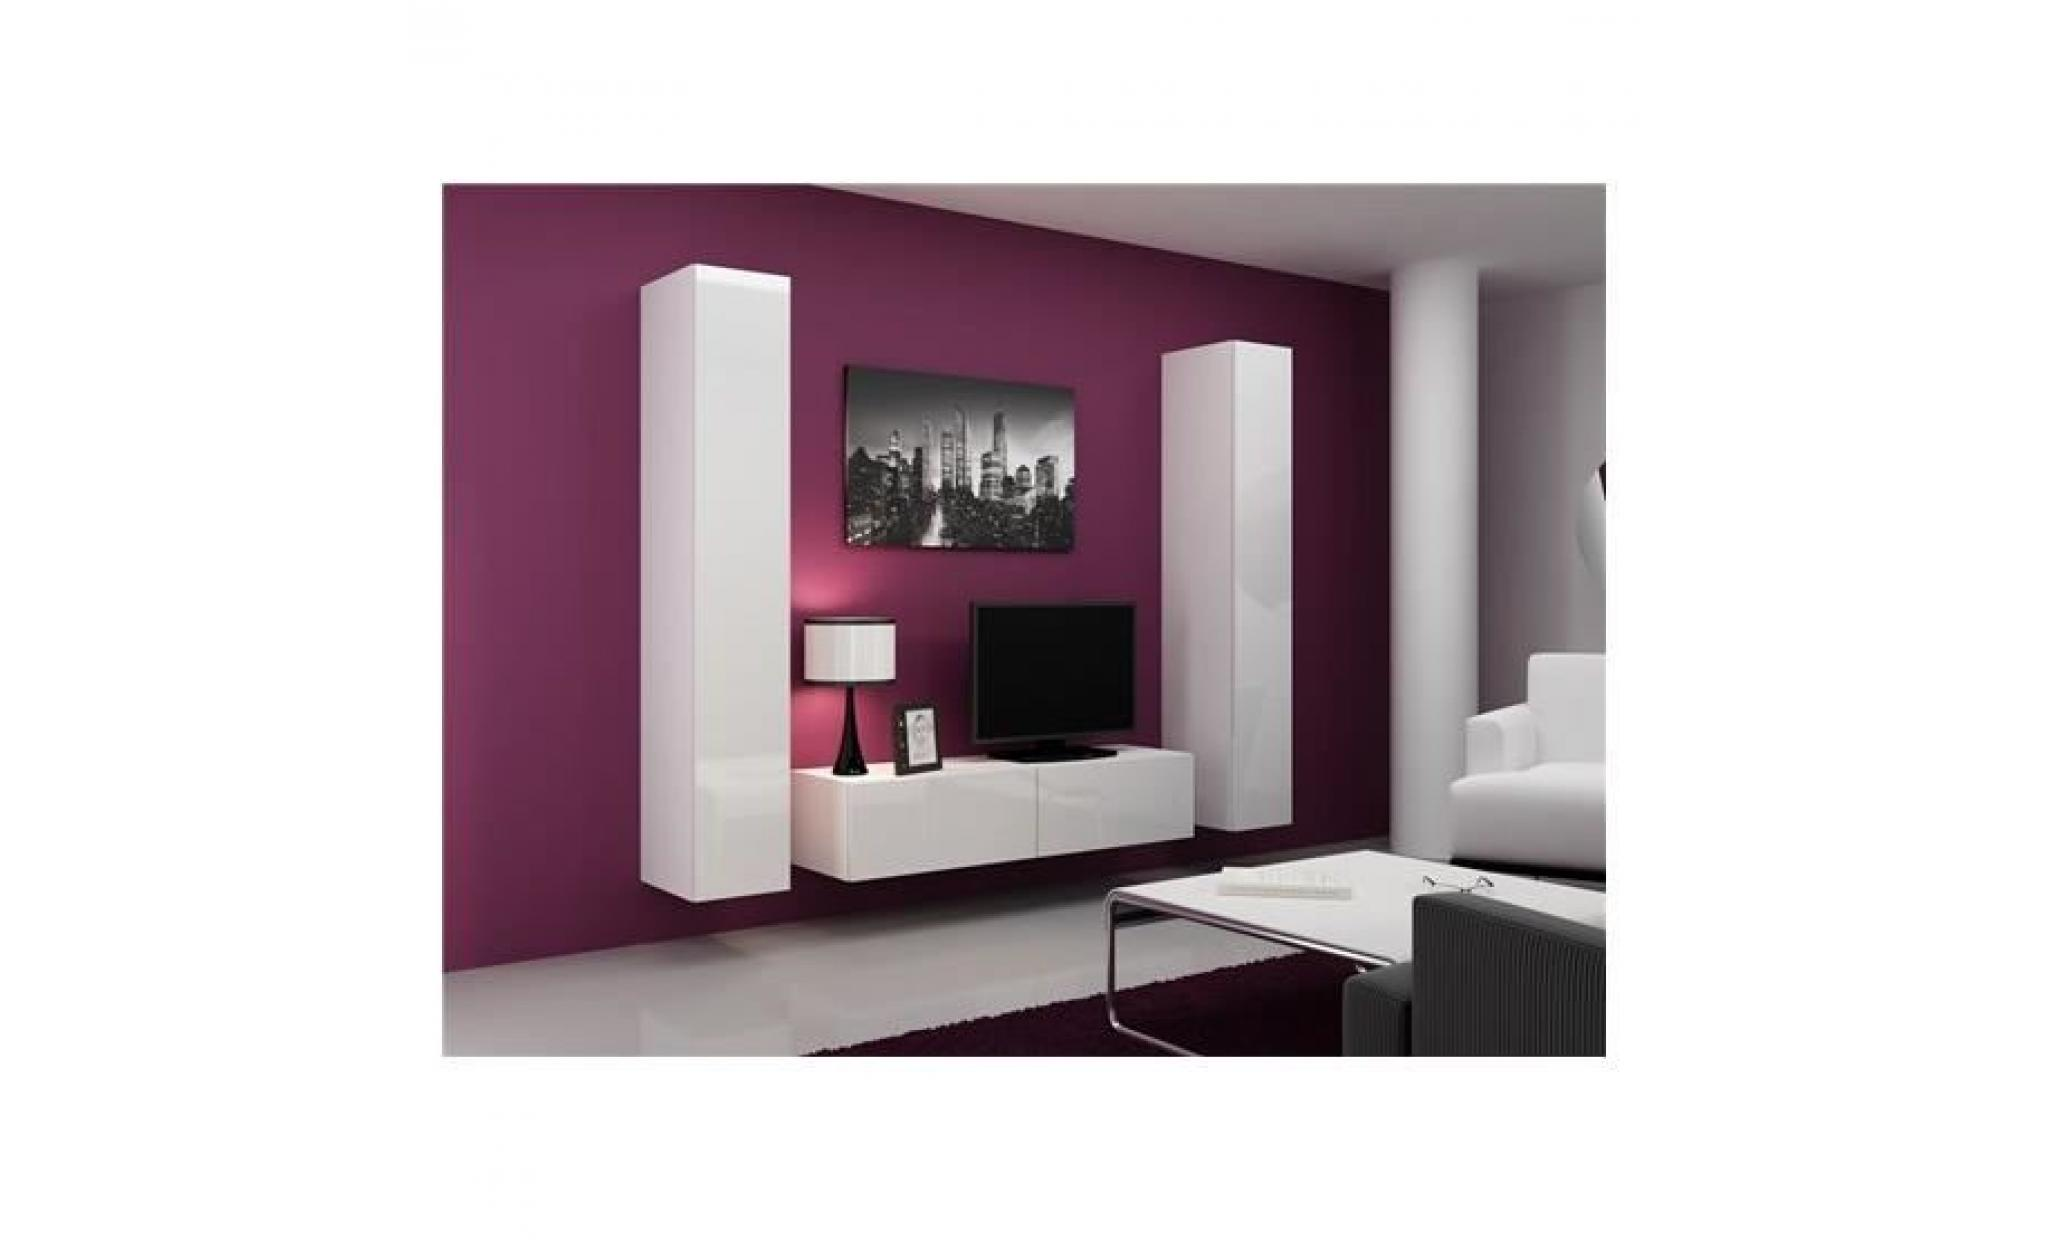 Meuble tv design suspendu vini blanc achat vente meuble for Meuble tv angle suspendu